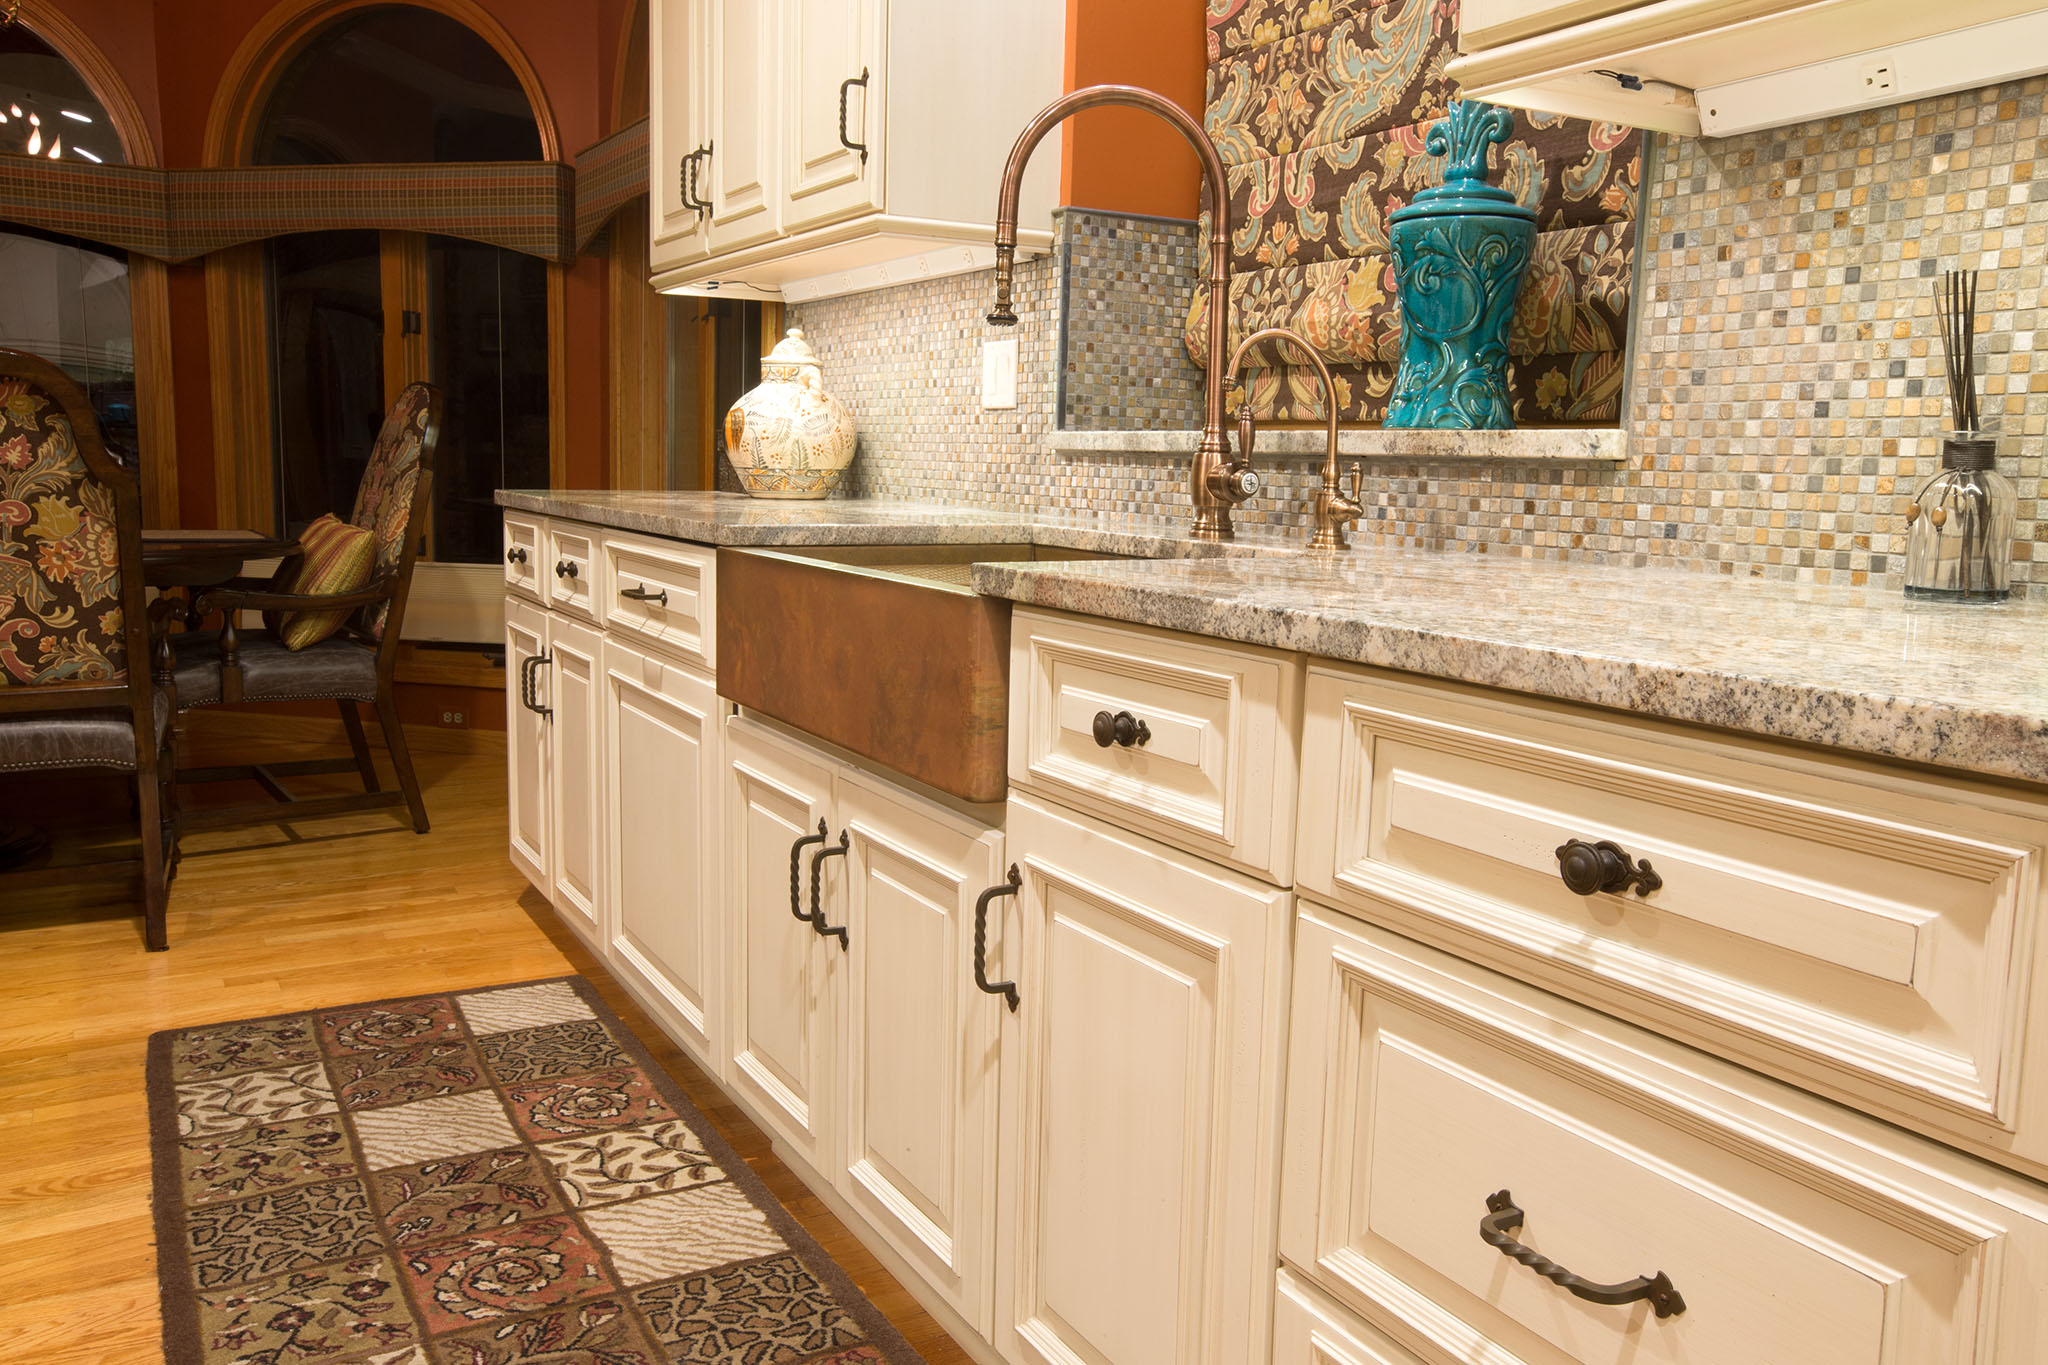 Off white kitchen cabinets with copper kitchen sink